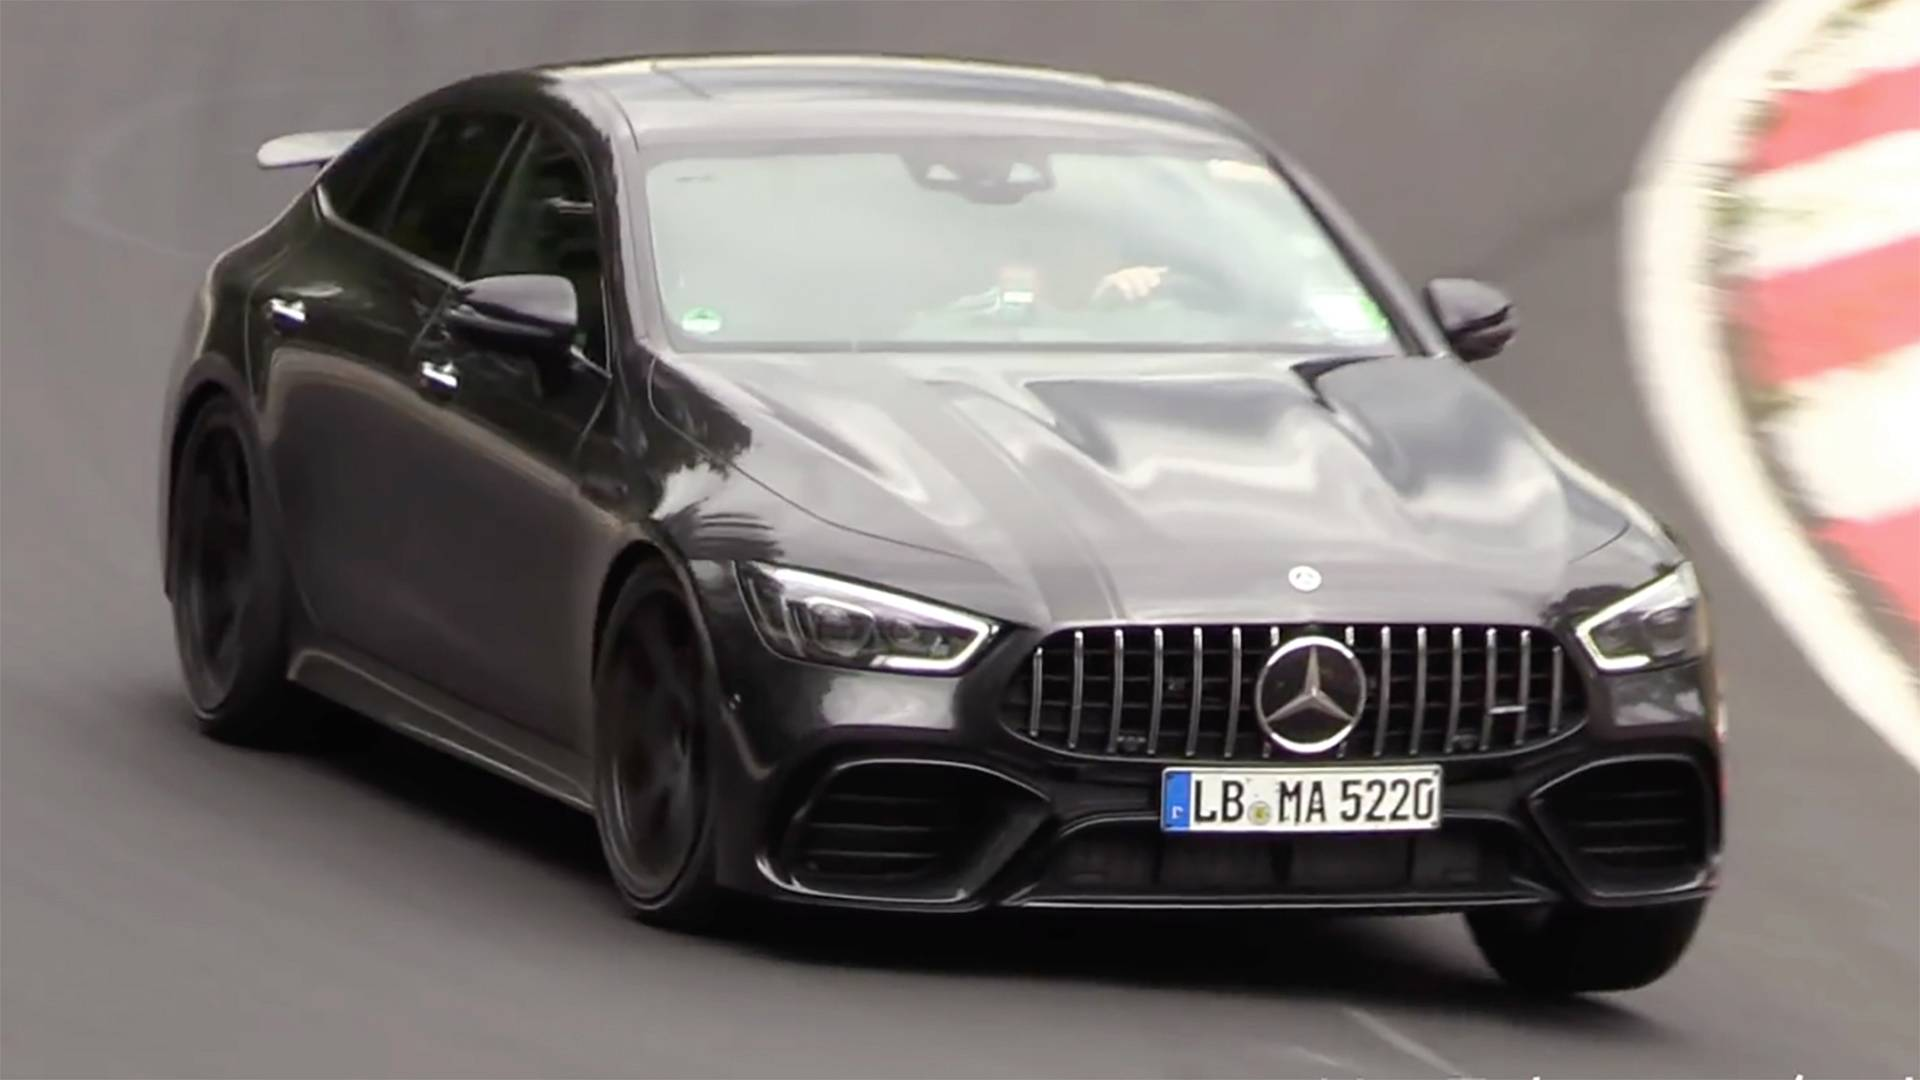 Watch The Mercedes Amg Gt 63 S Attack The Nurburgring